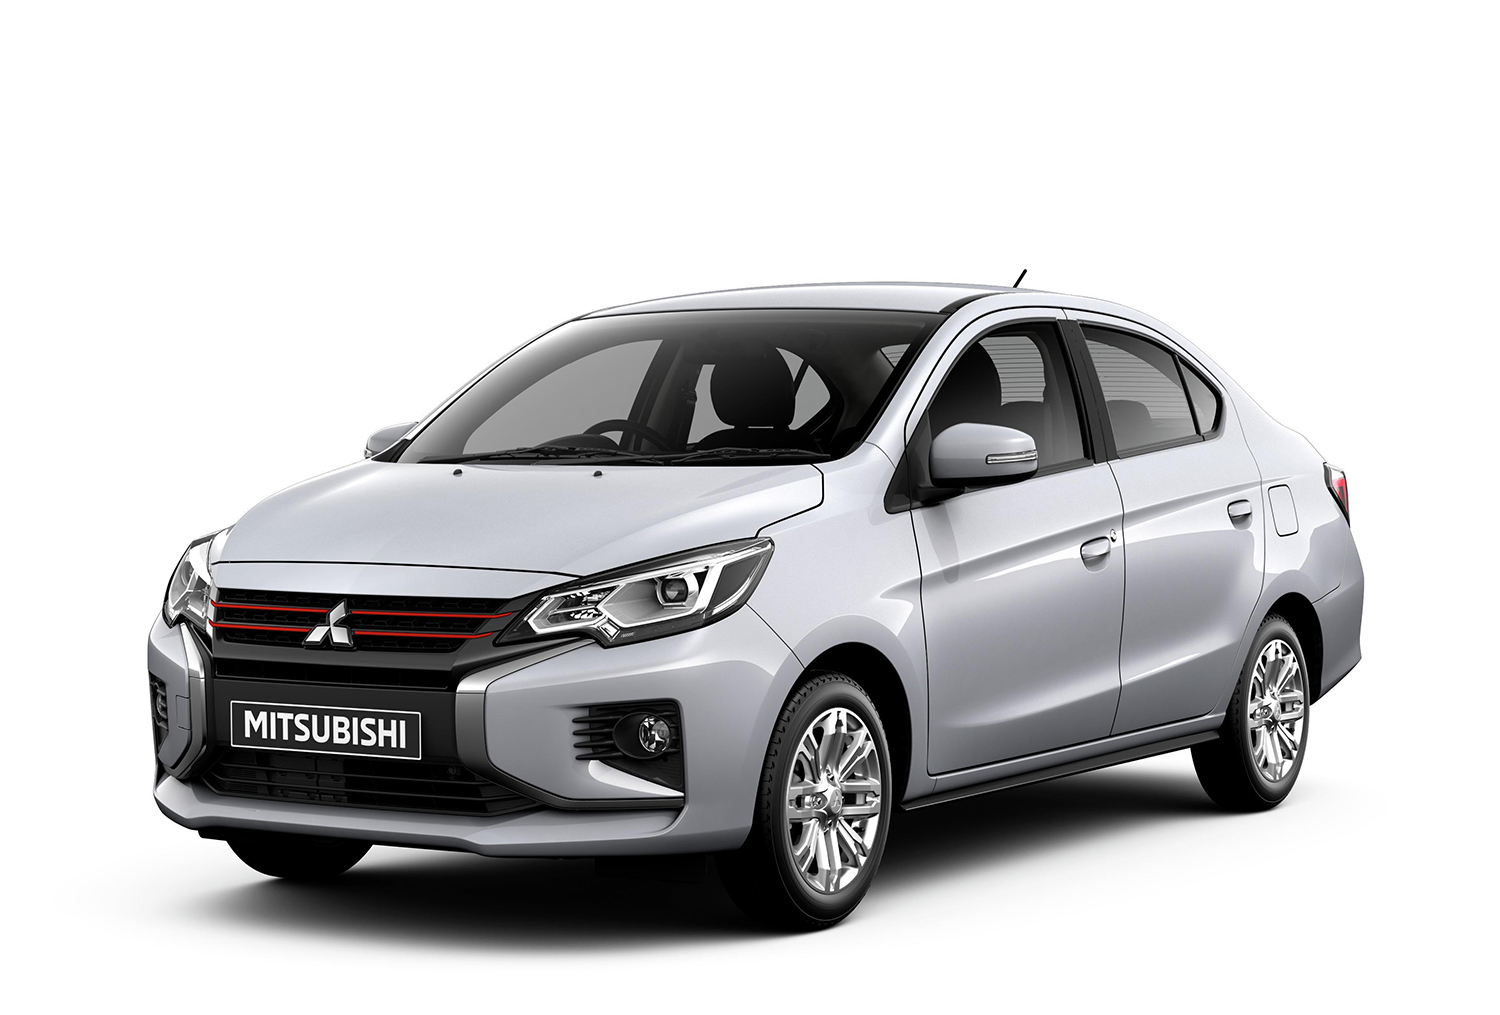 2020 Mitsubishi Attrage And Mirage Facelift Thai Prices And Specs